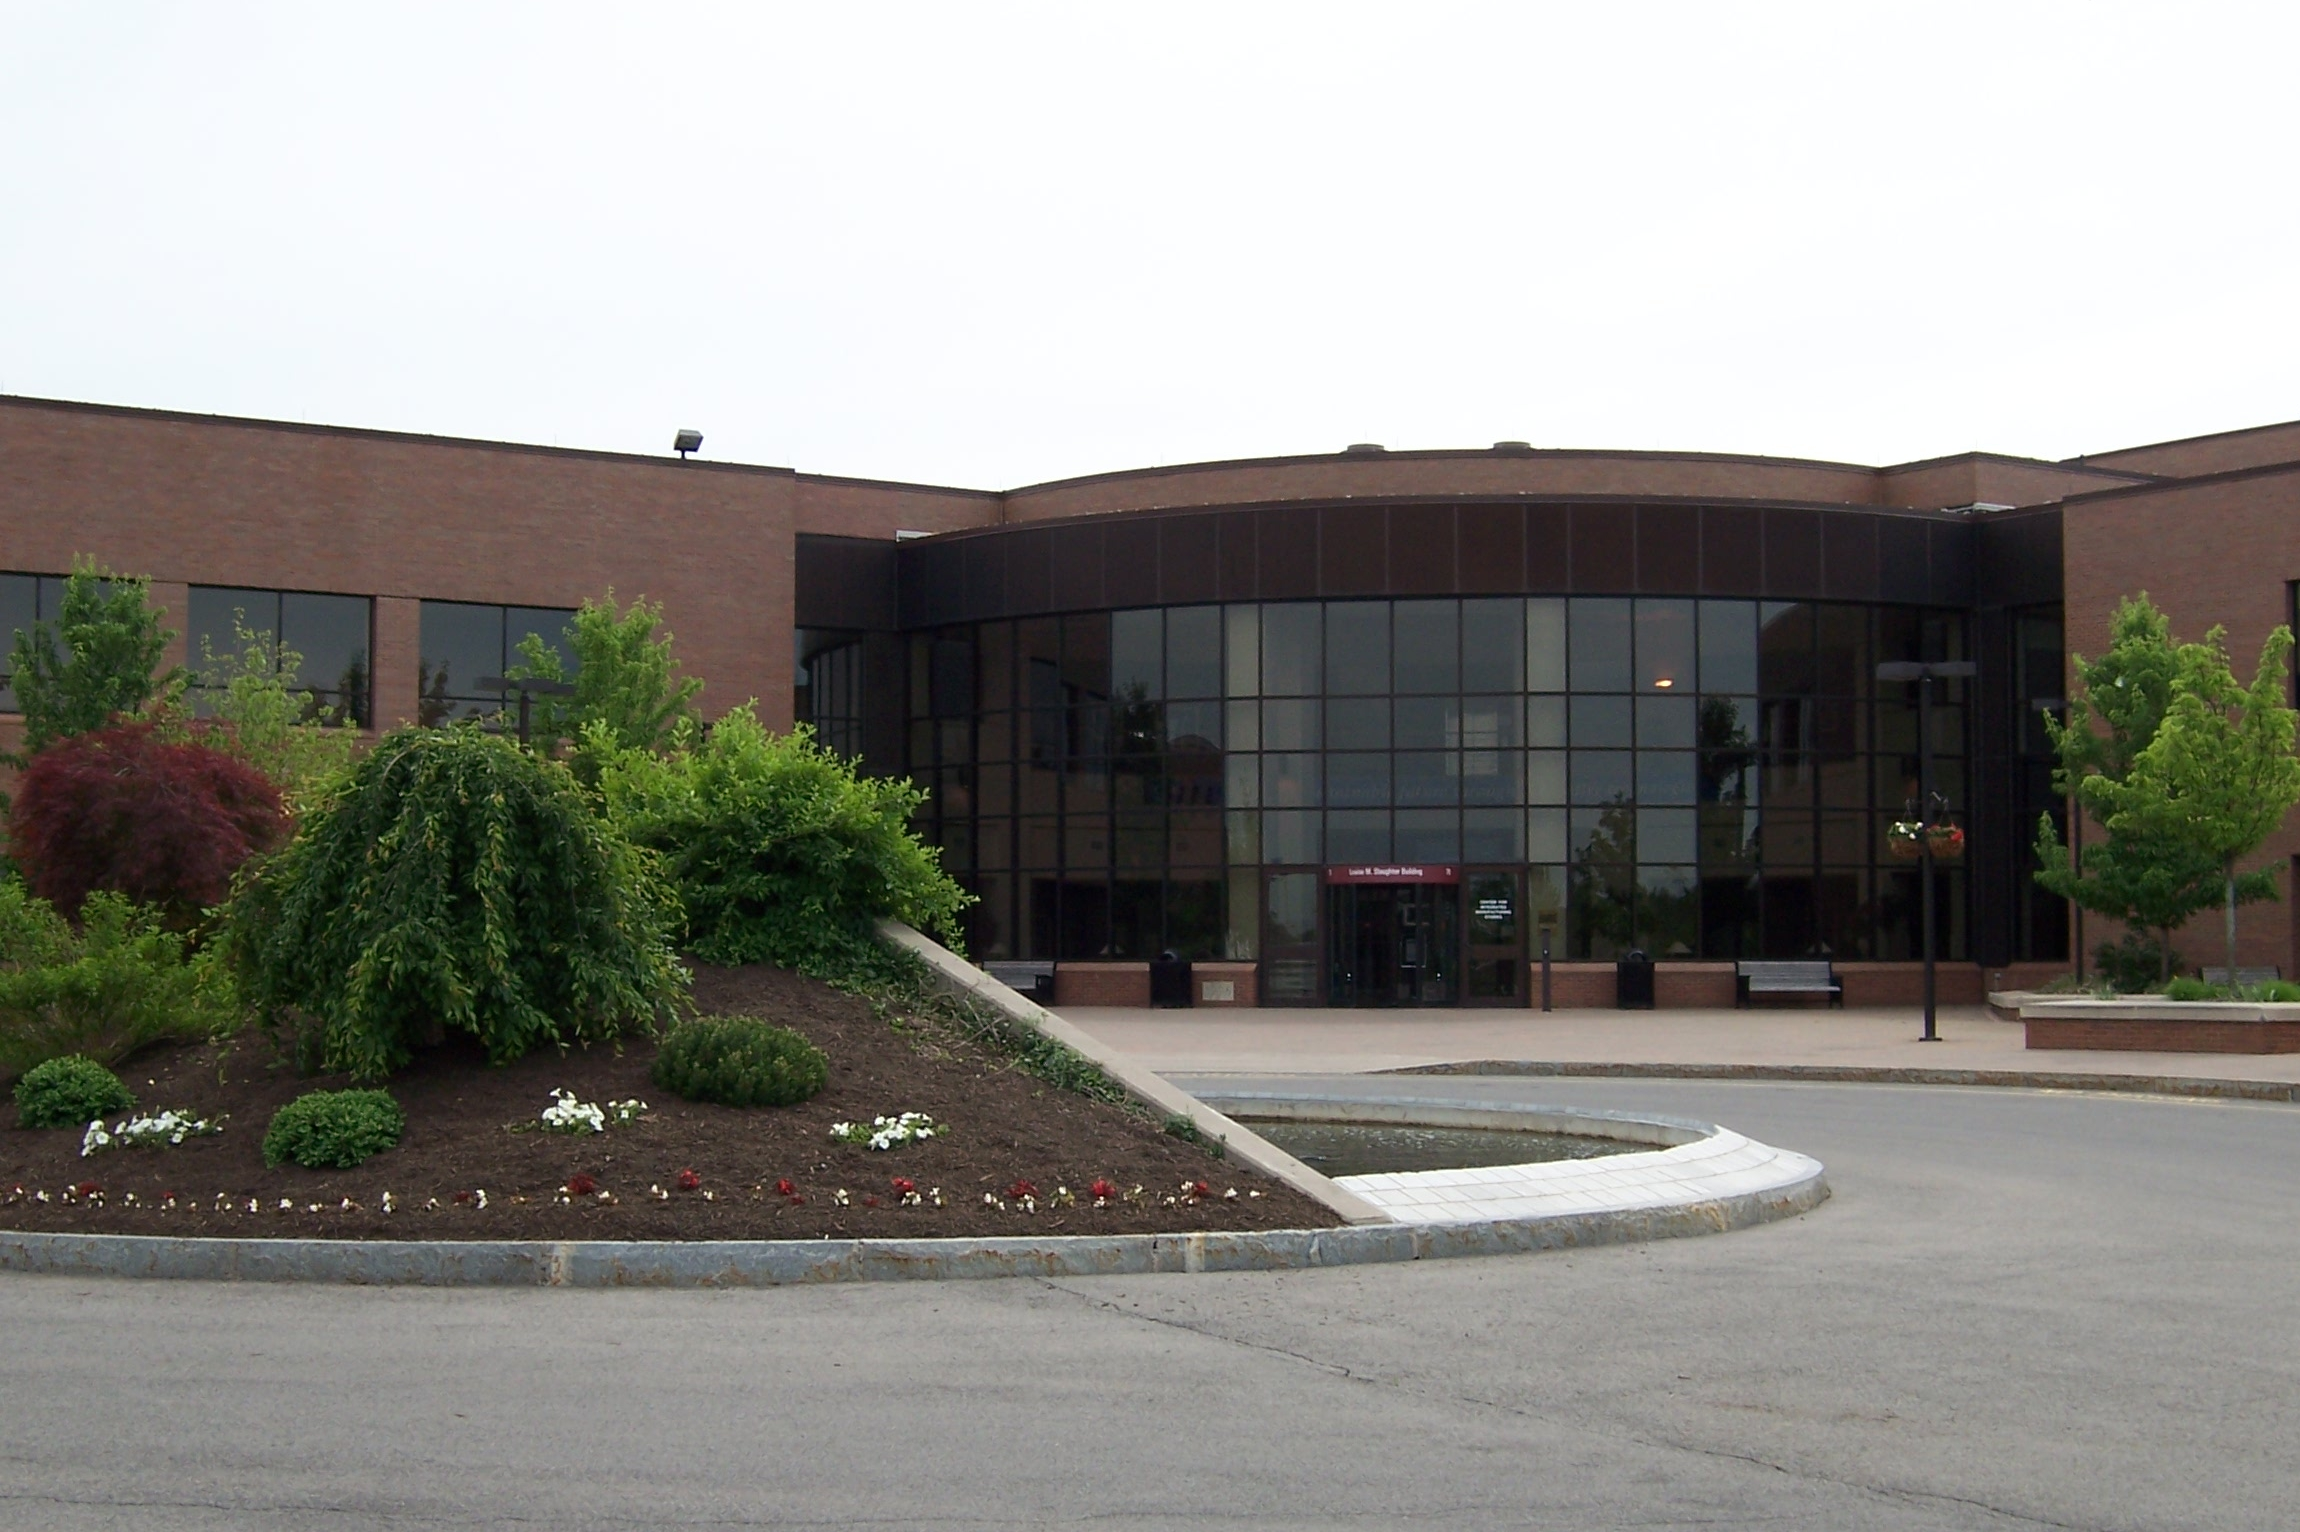 Slaughter Hall on the RIT Campus